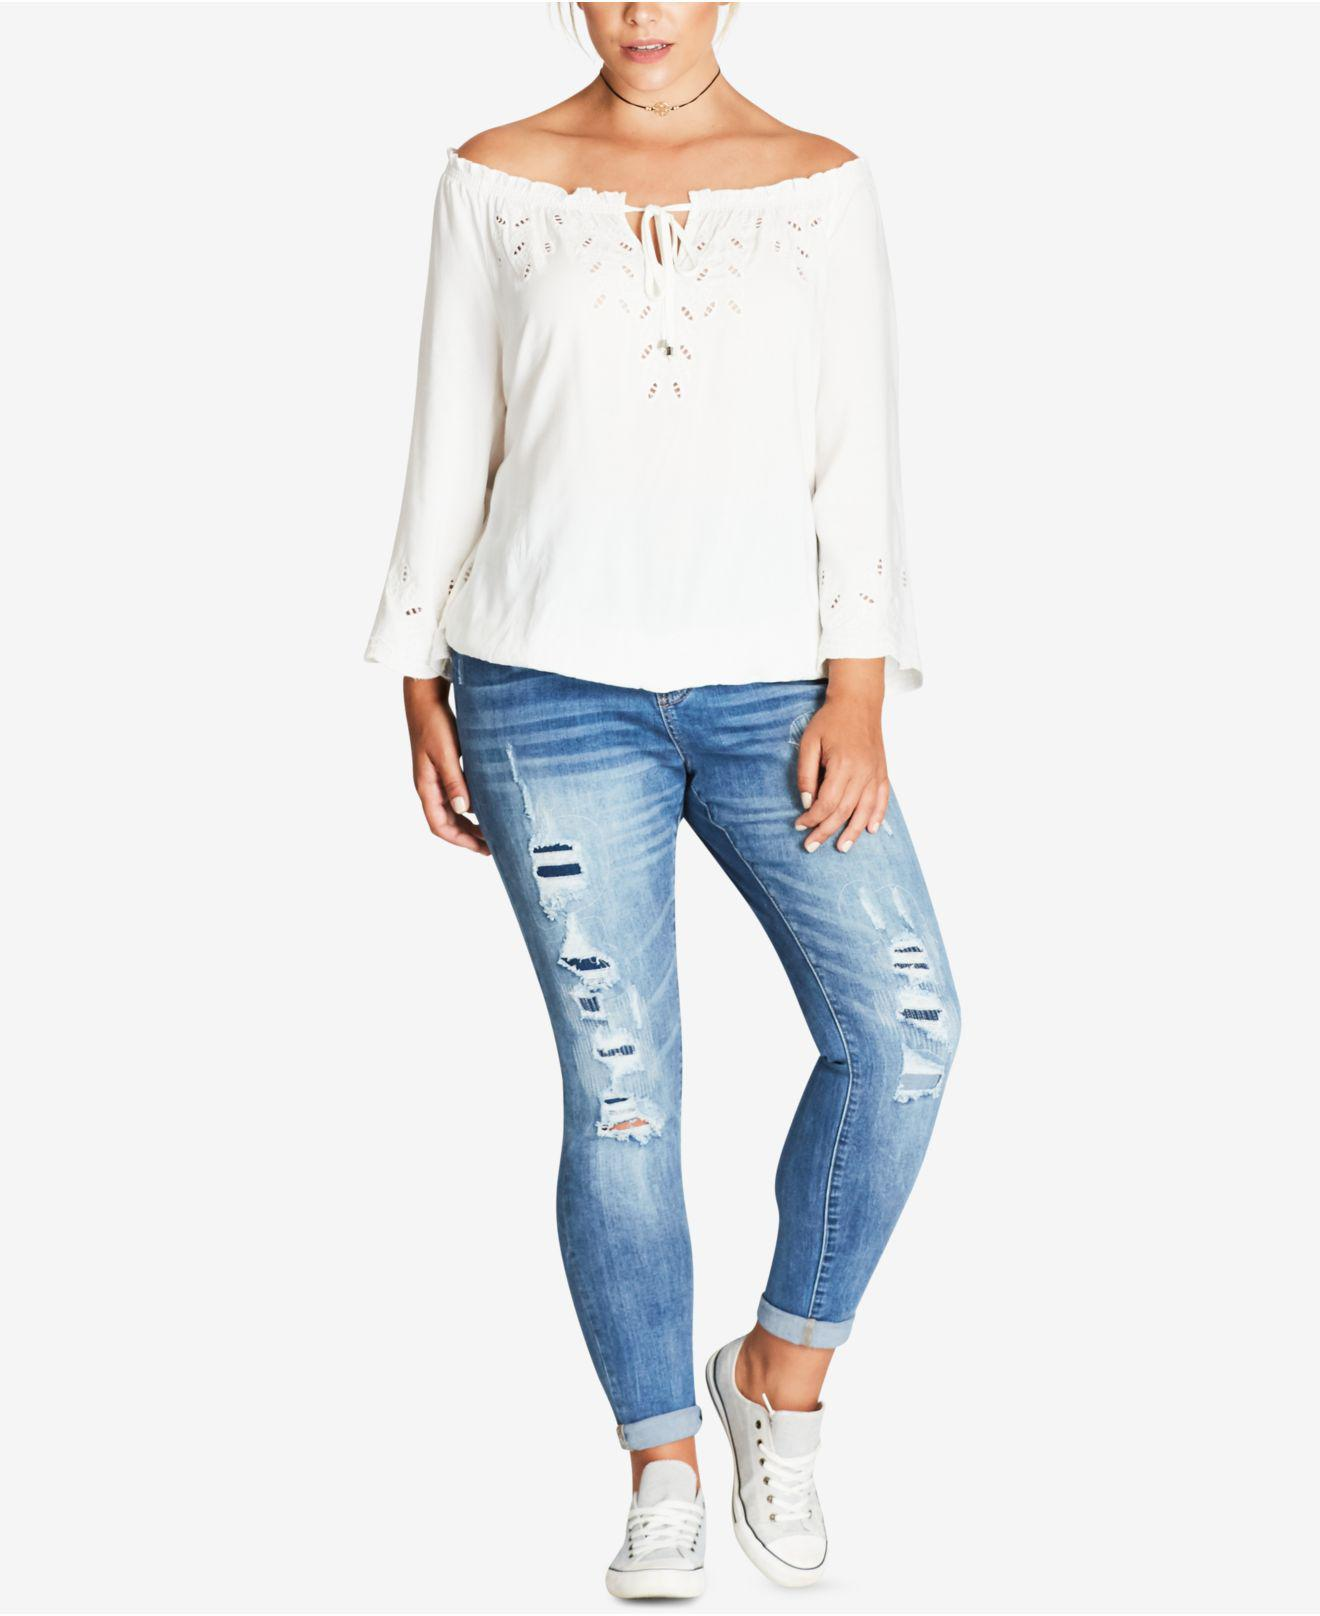 5a9e2451822 Lyst - City Chic Trendy Plus Size Off-the-shoulder Eyelet Top in White